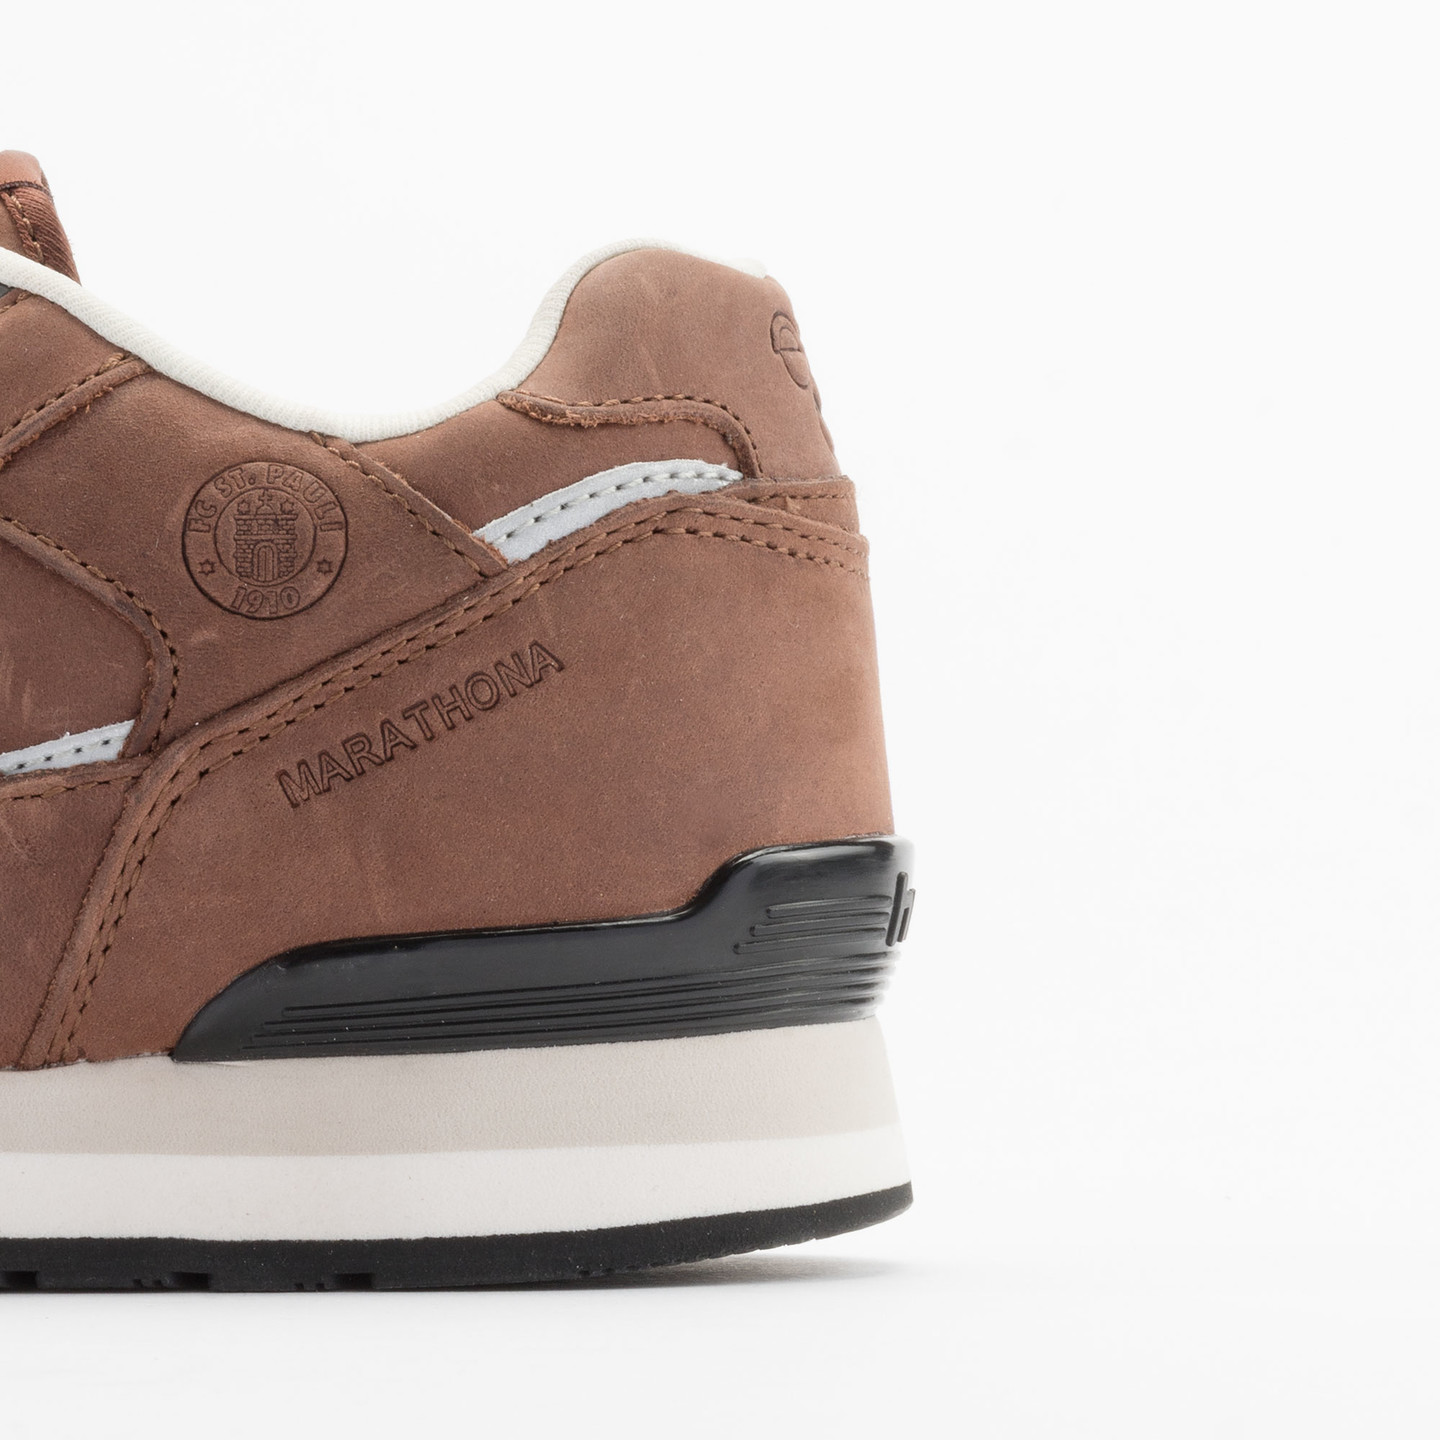 Hummel Marathona Low x St.Pauli Dark Brown 63-821-8225-47